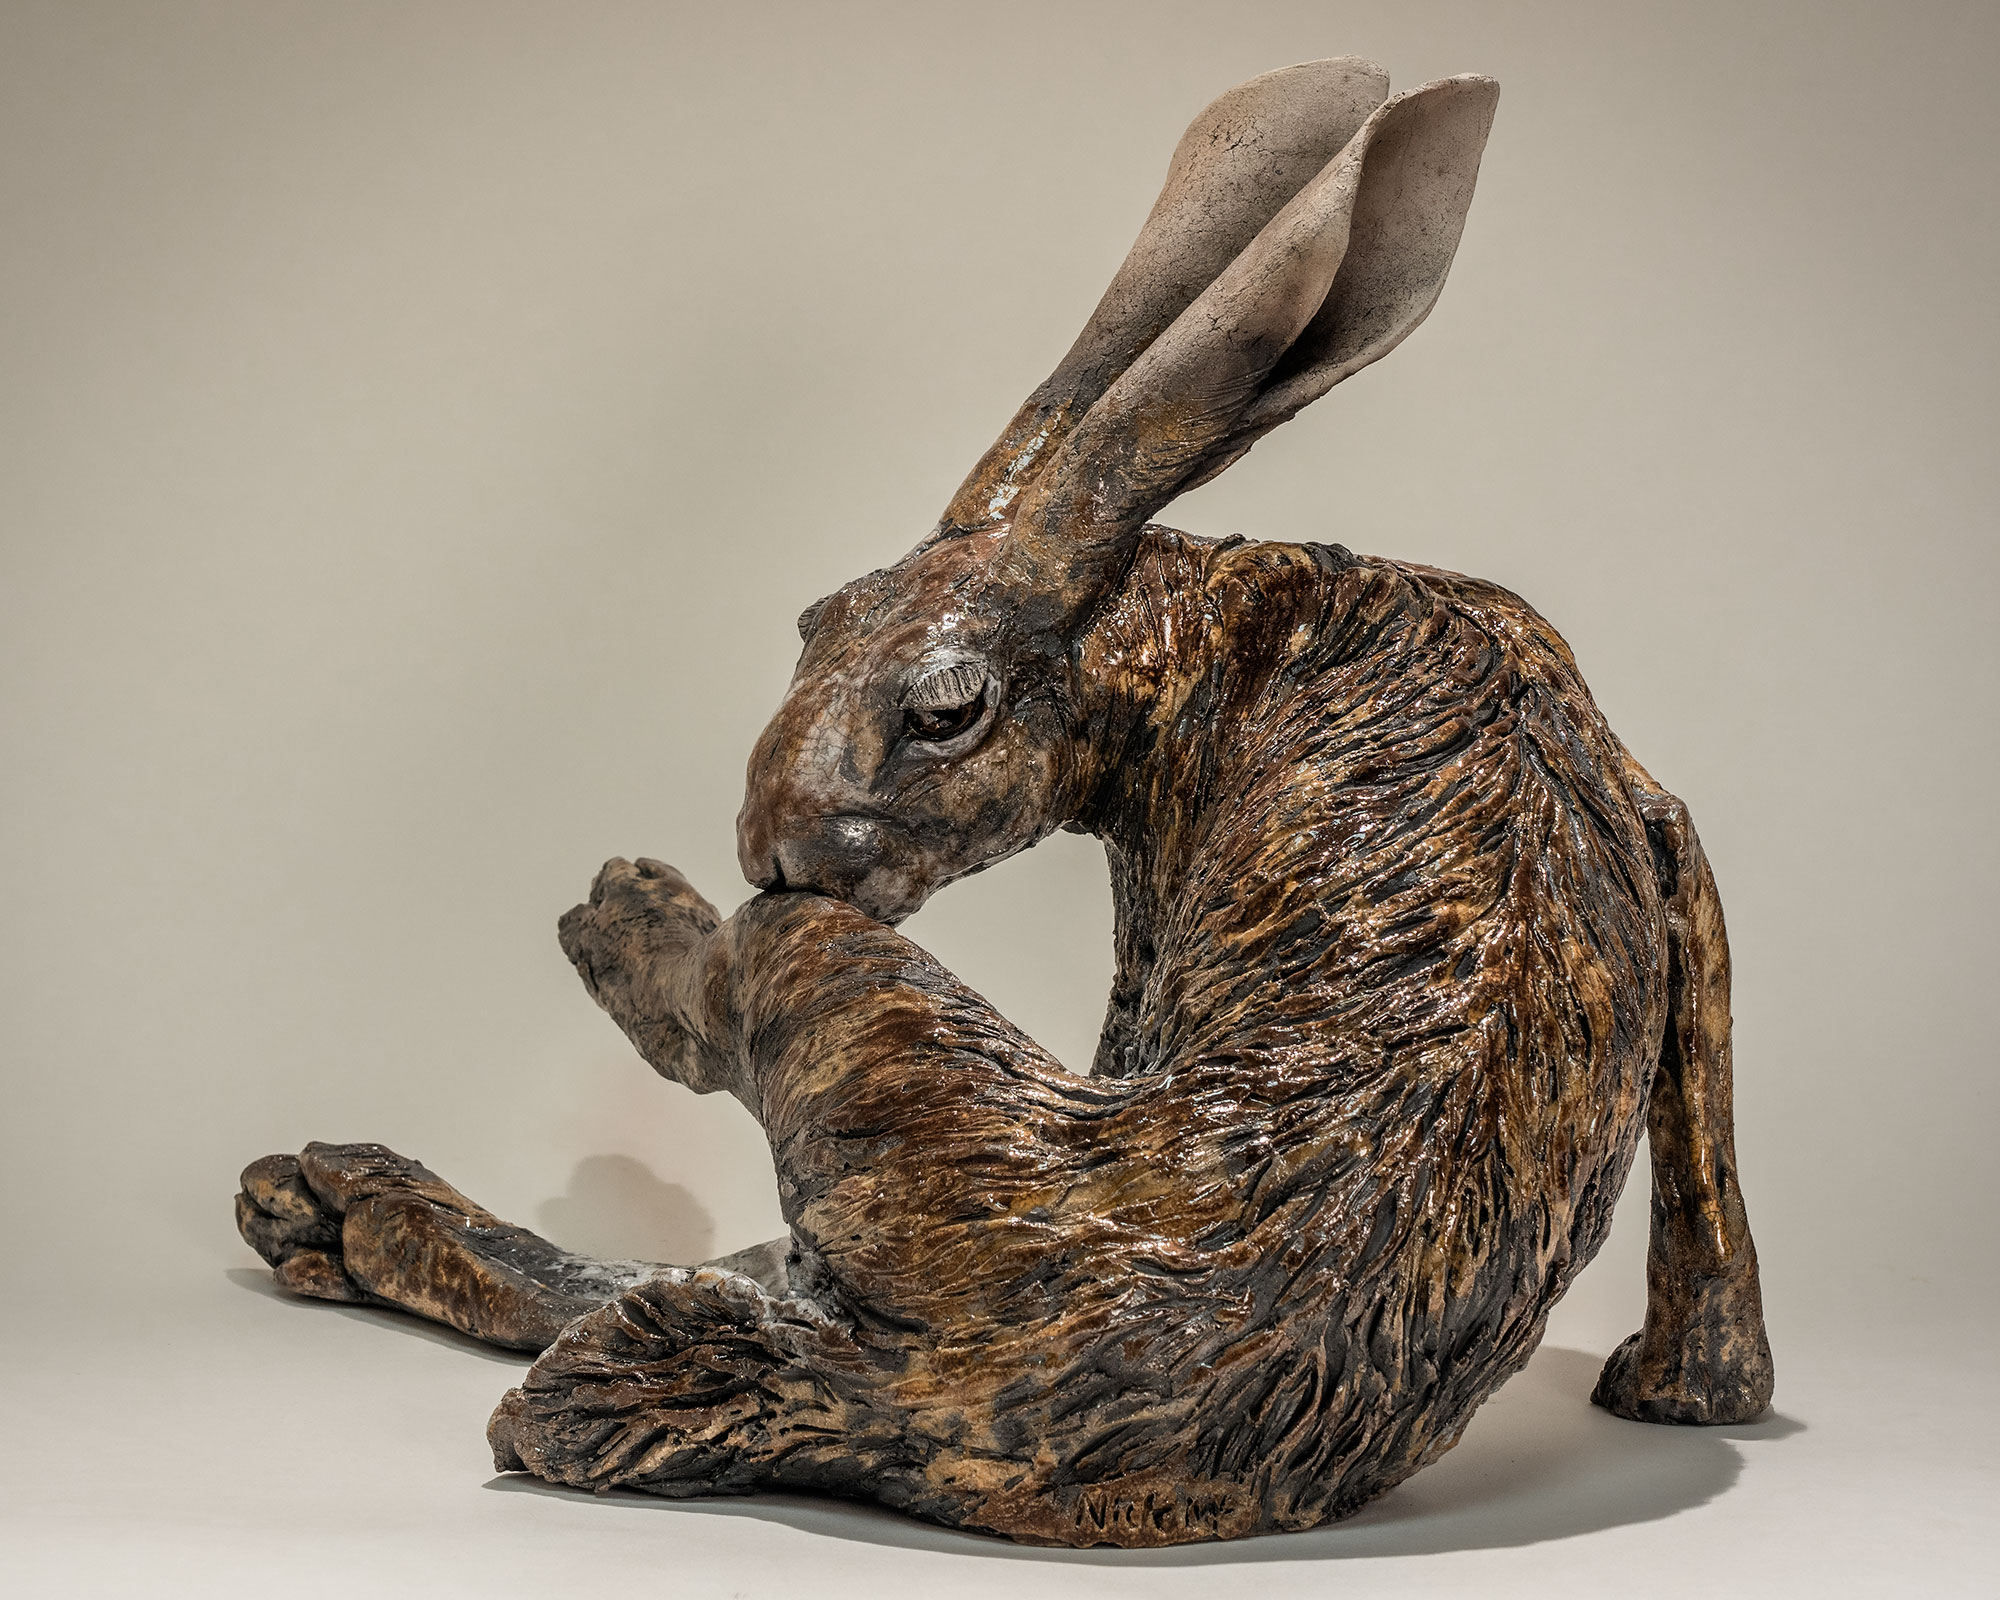 Hare Sculpture 163 1950 Sold Nick Mackman Animal Sculpture